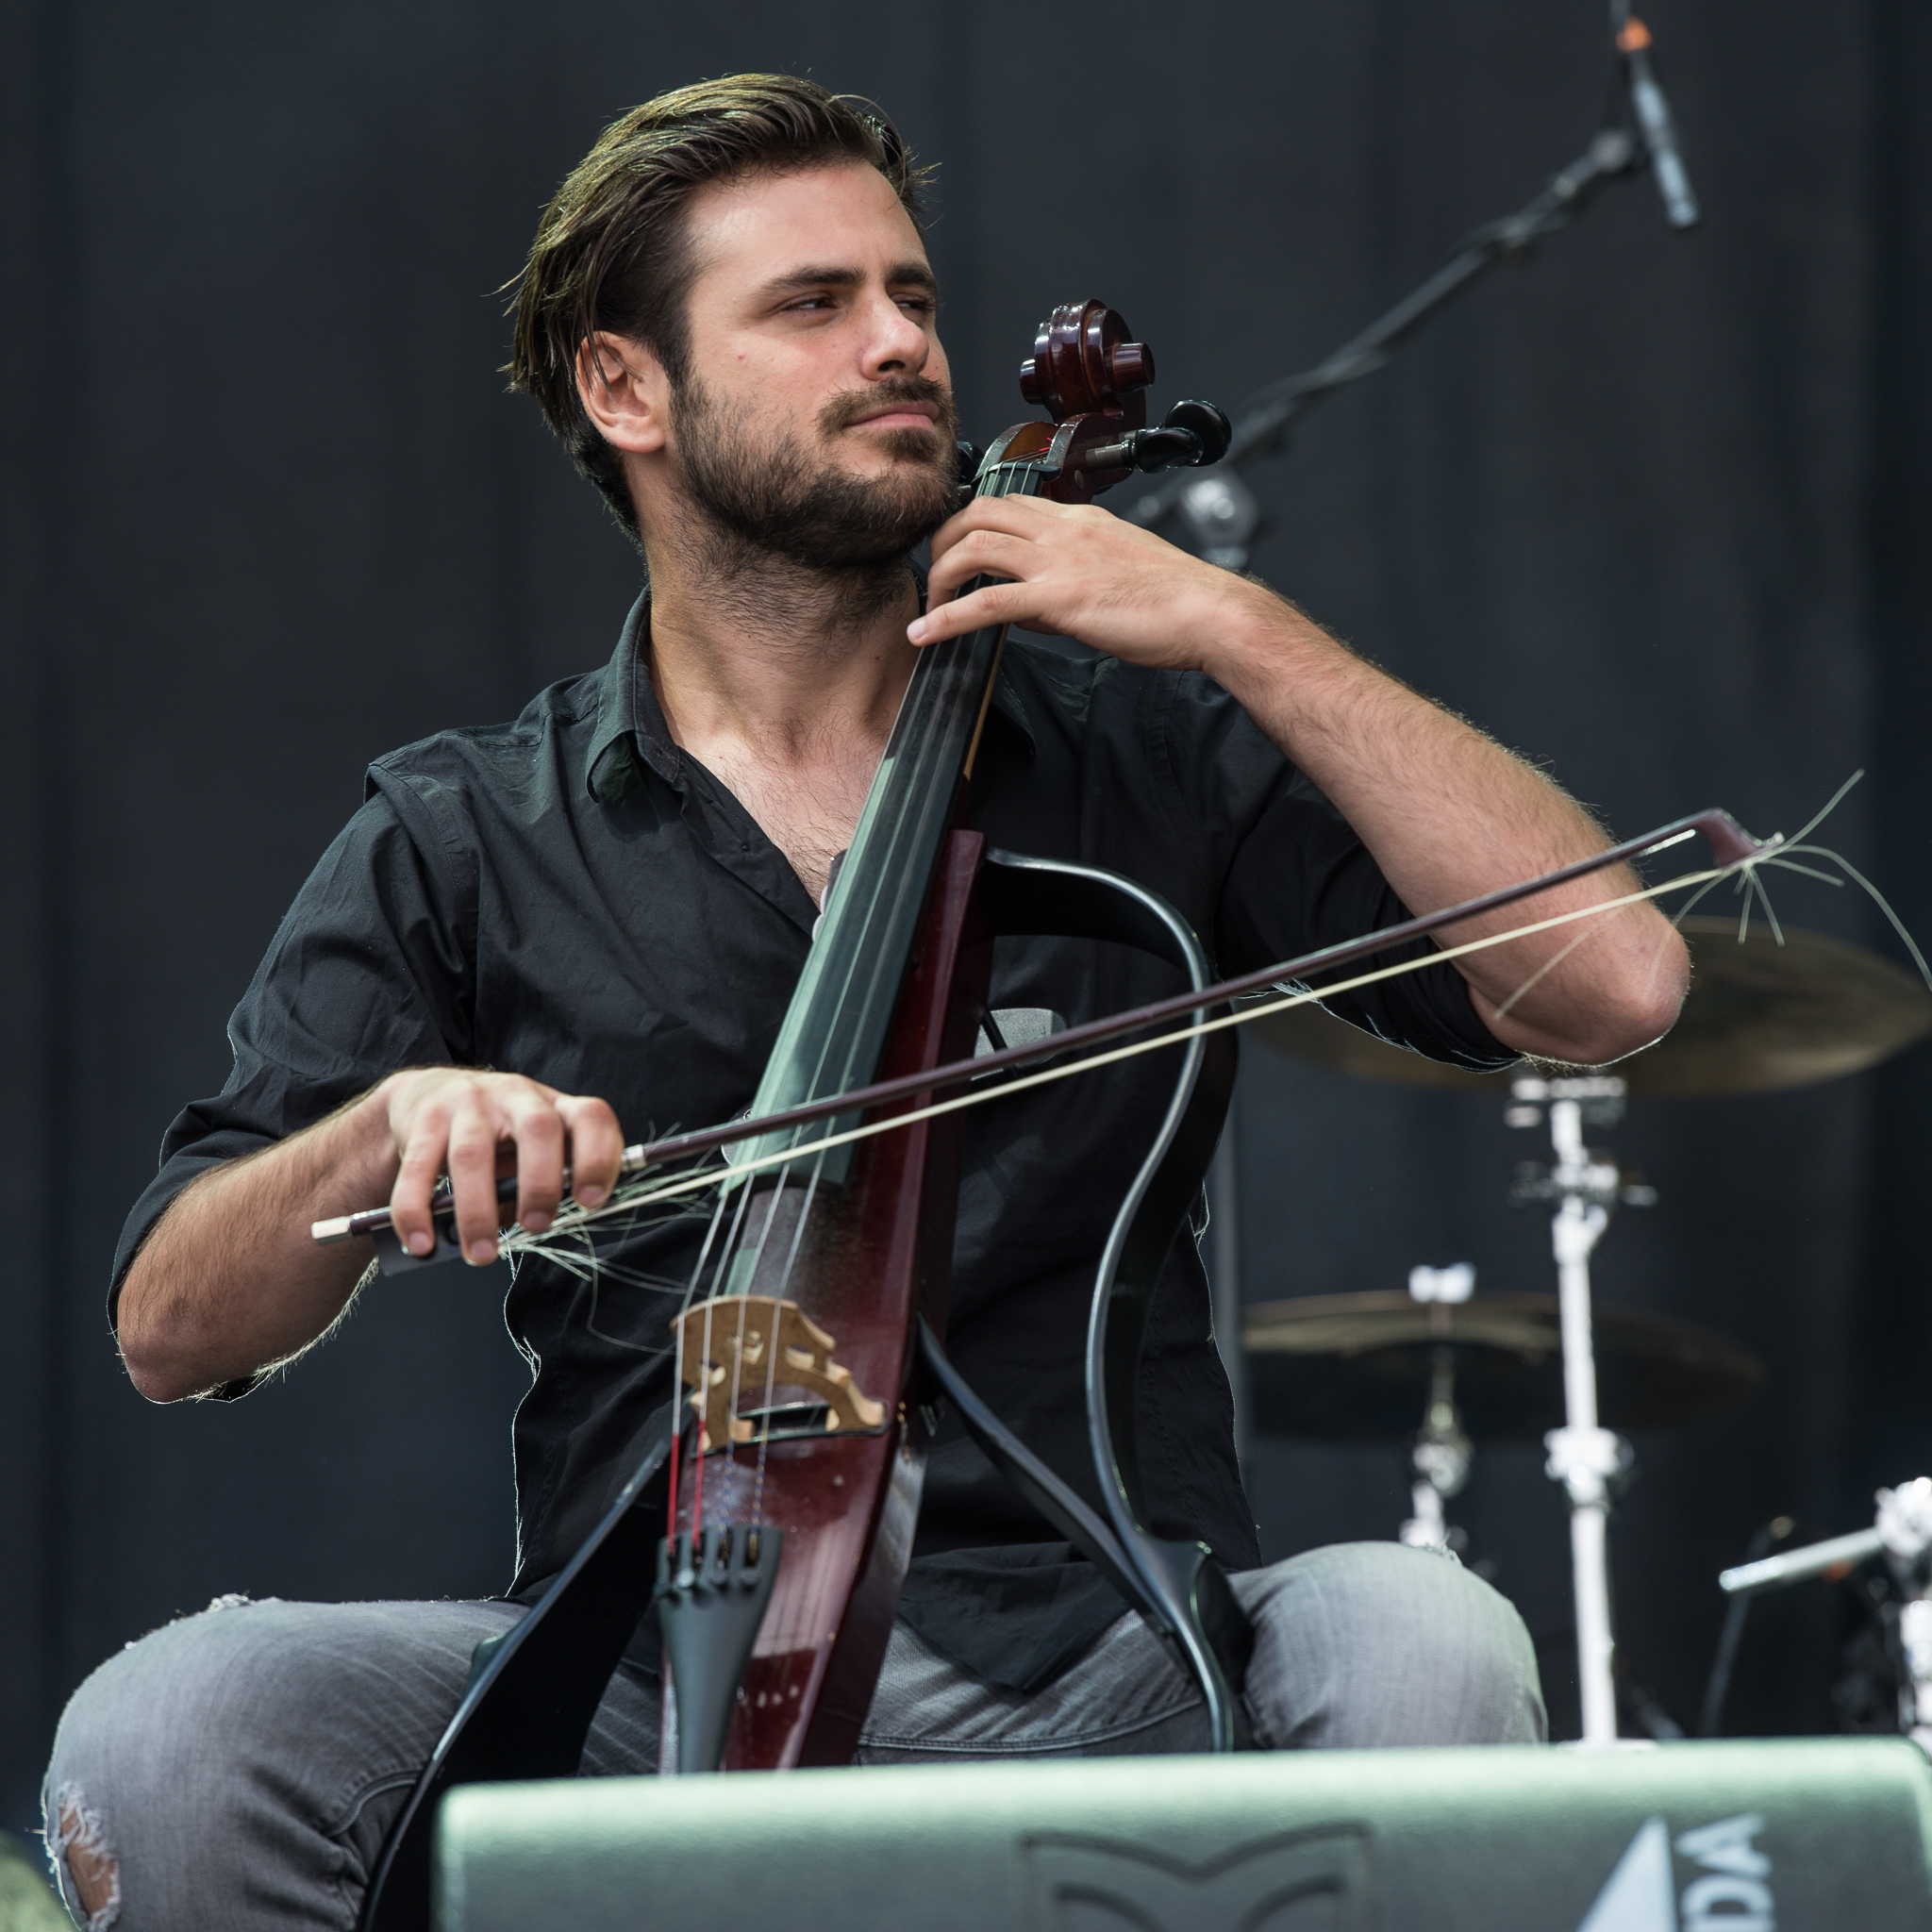 File:2017 RiP - 2Cellos - Stjepan Hauser - by 2eight